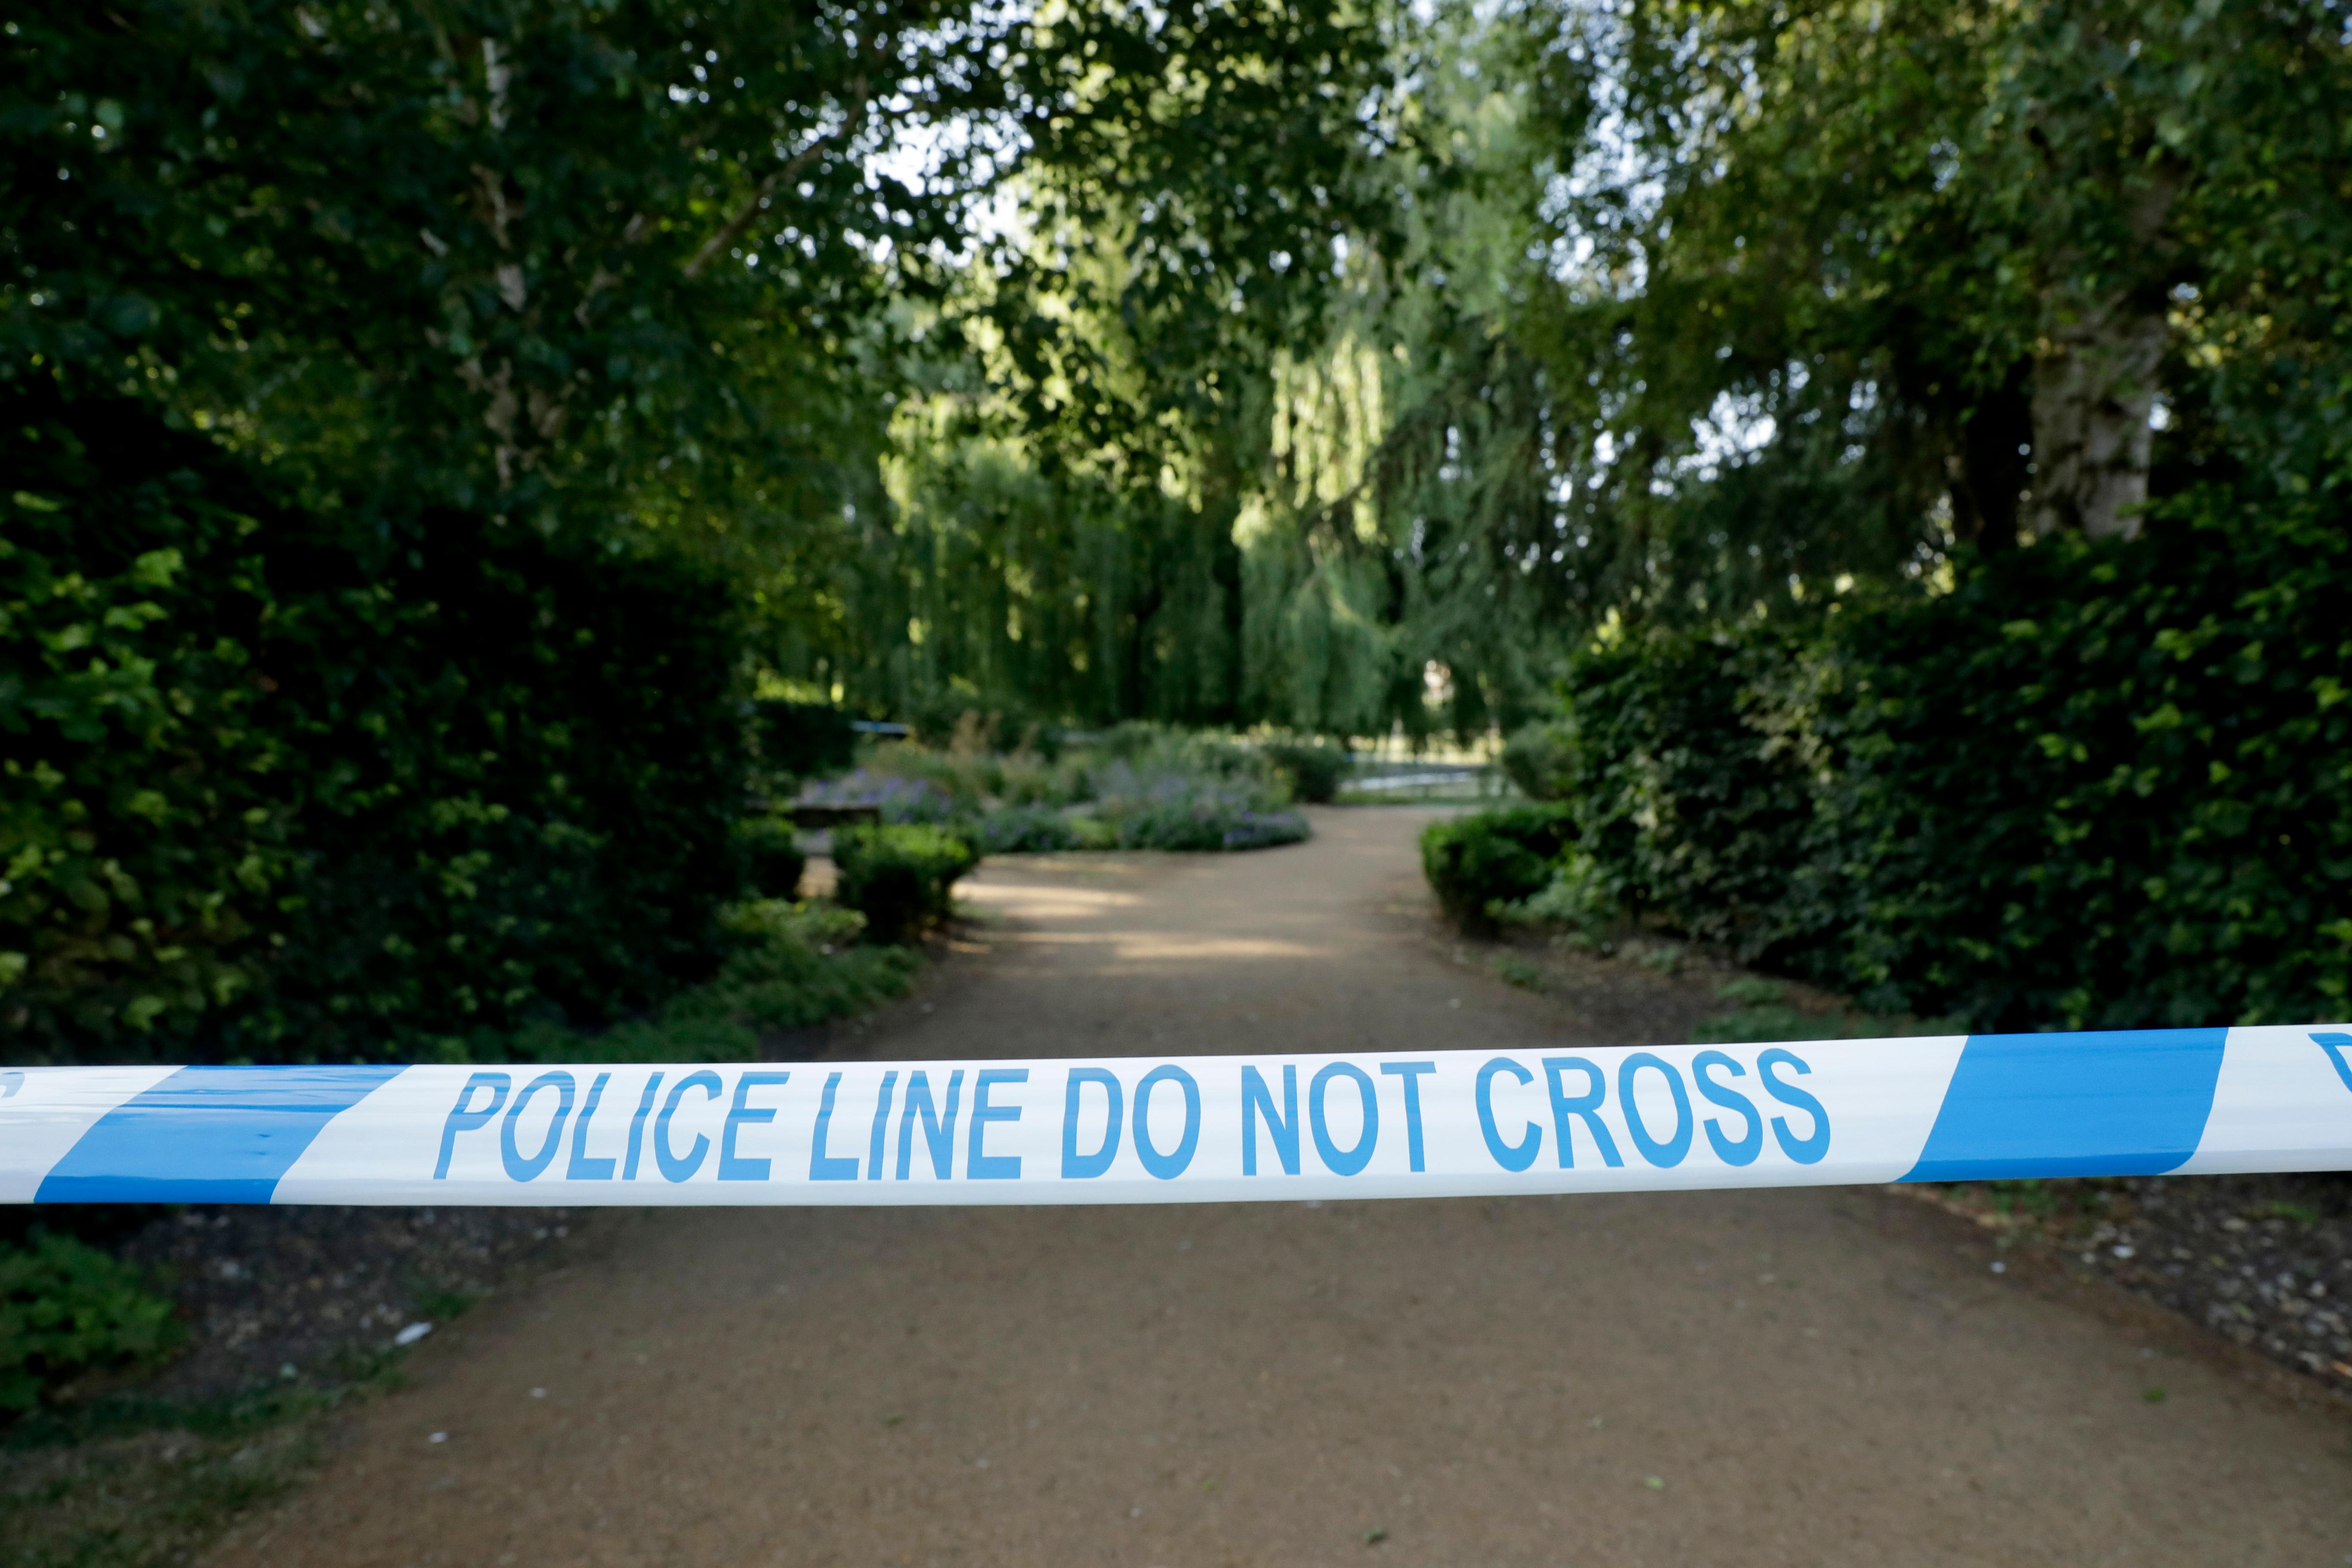 Police cordon tape hangs surrounding the Queen Elizabeth Gardens park in Salisbury, England, Thursday, July 5, 2018. British officials are seeking clues Thursday in the rush to understand how two Britons were exposed to the military-grade nerve agent Novichok. (AP Photo/Matt Dunham)